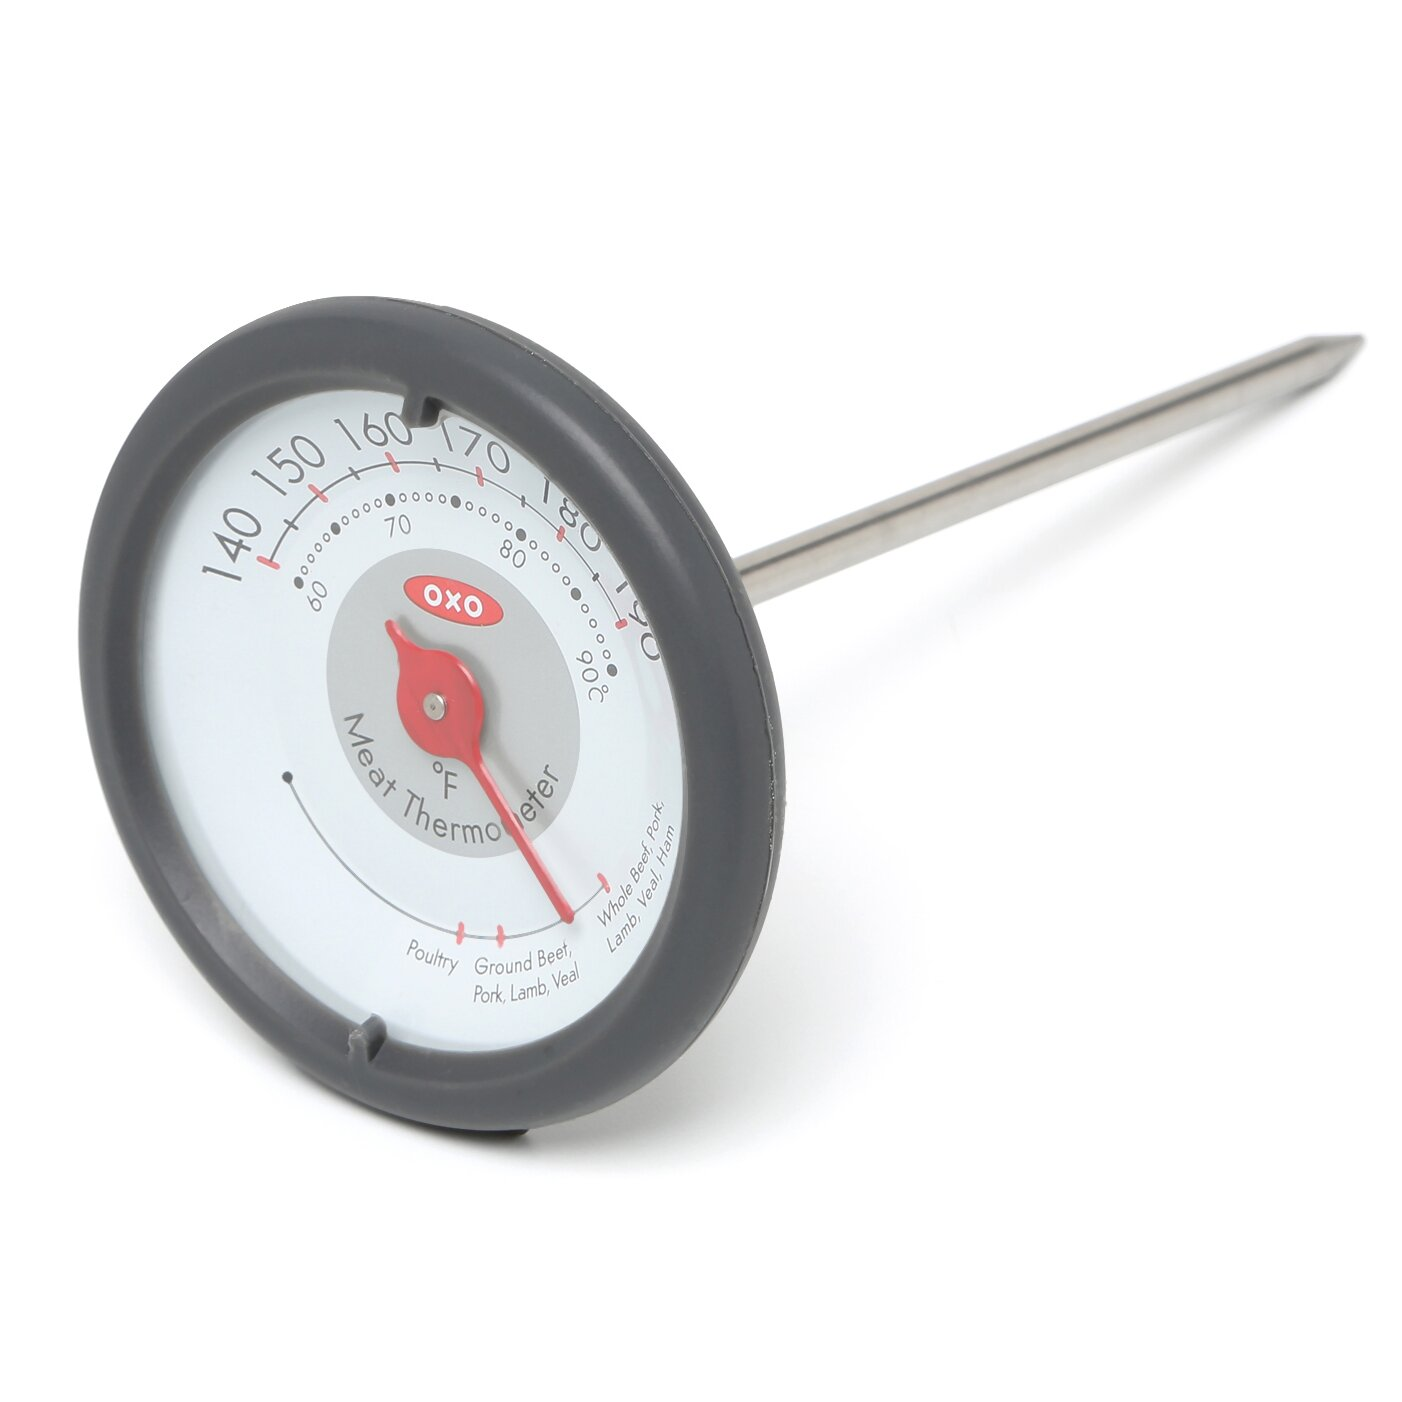 All clad instant read thermometer - Oxo Leave In Meat Thermometer